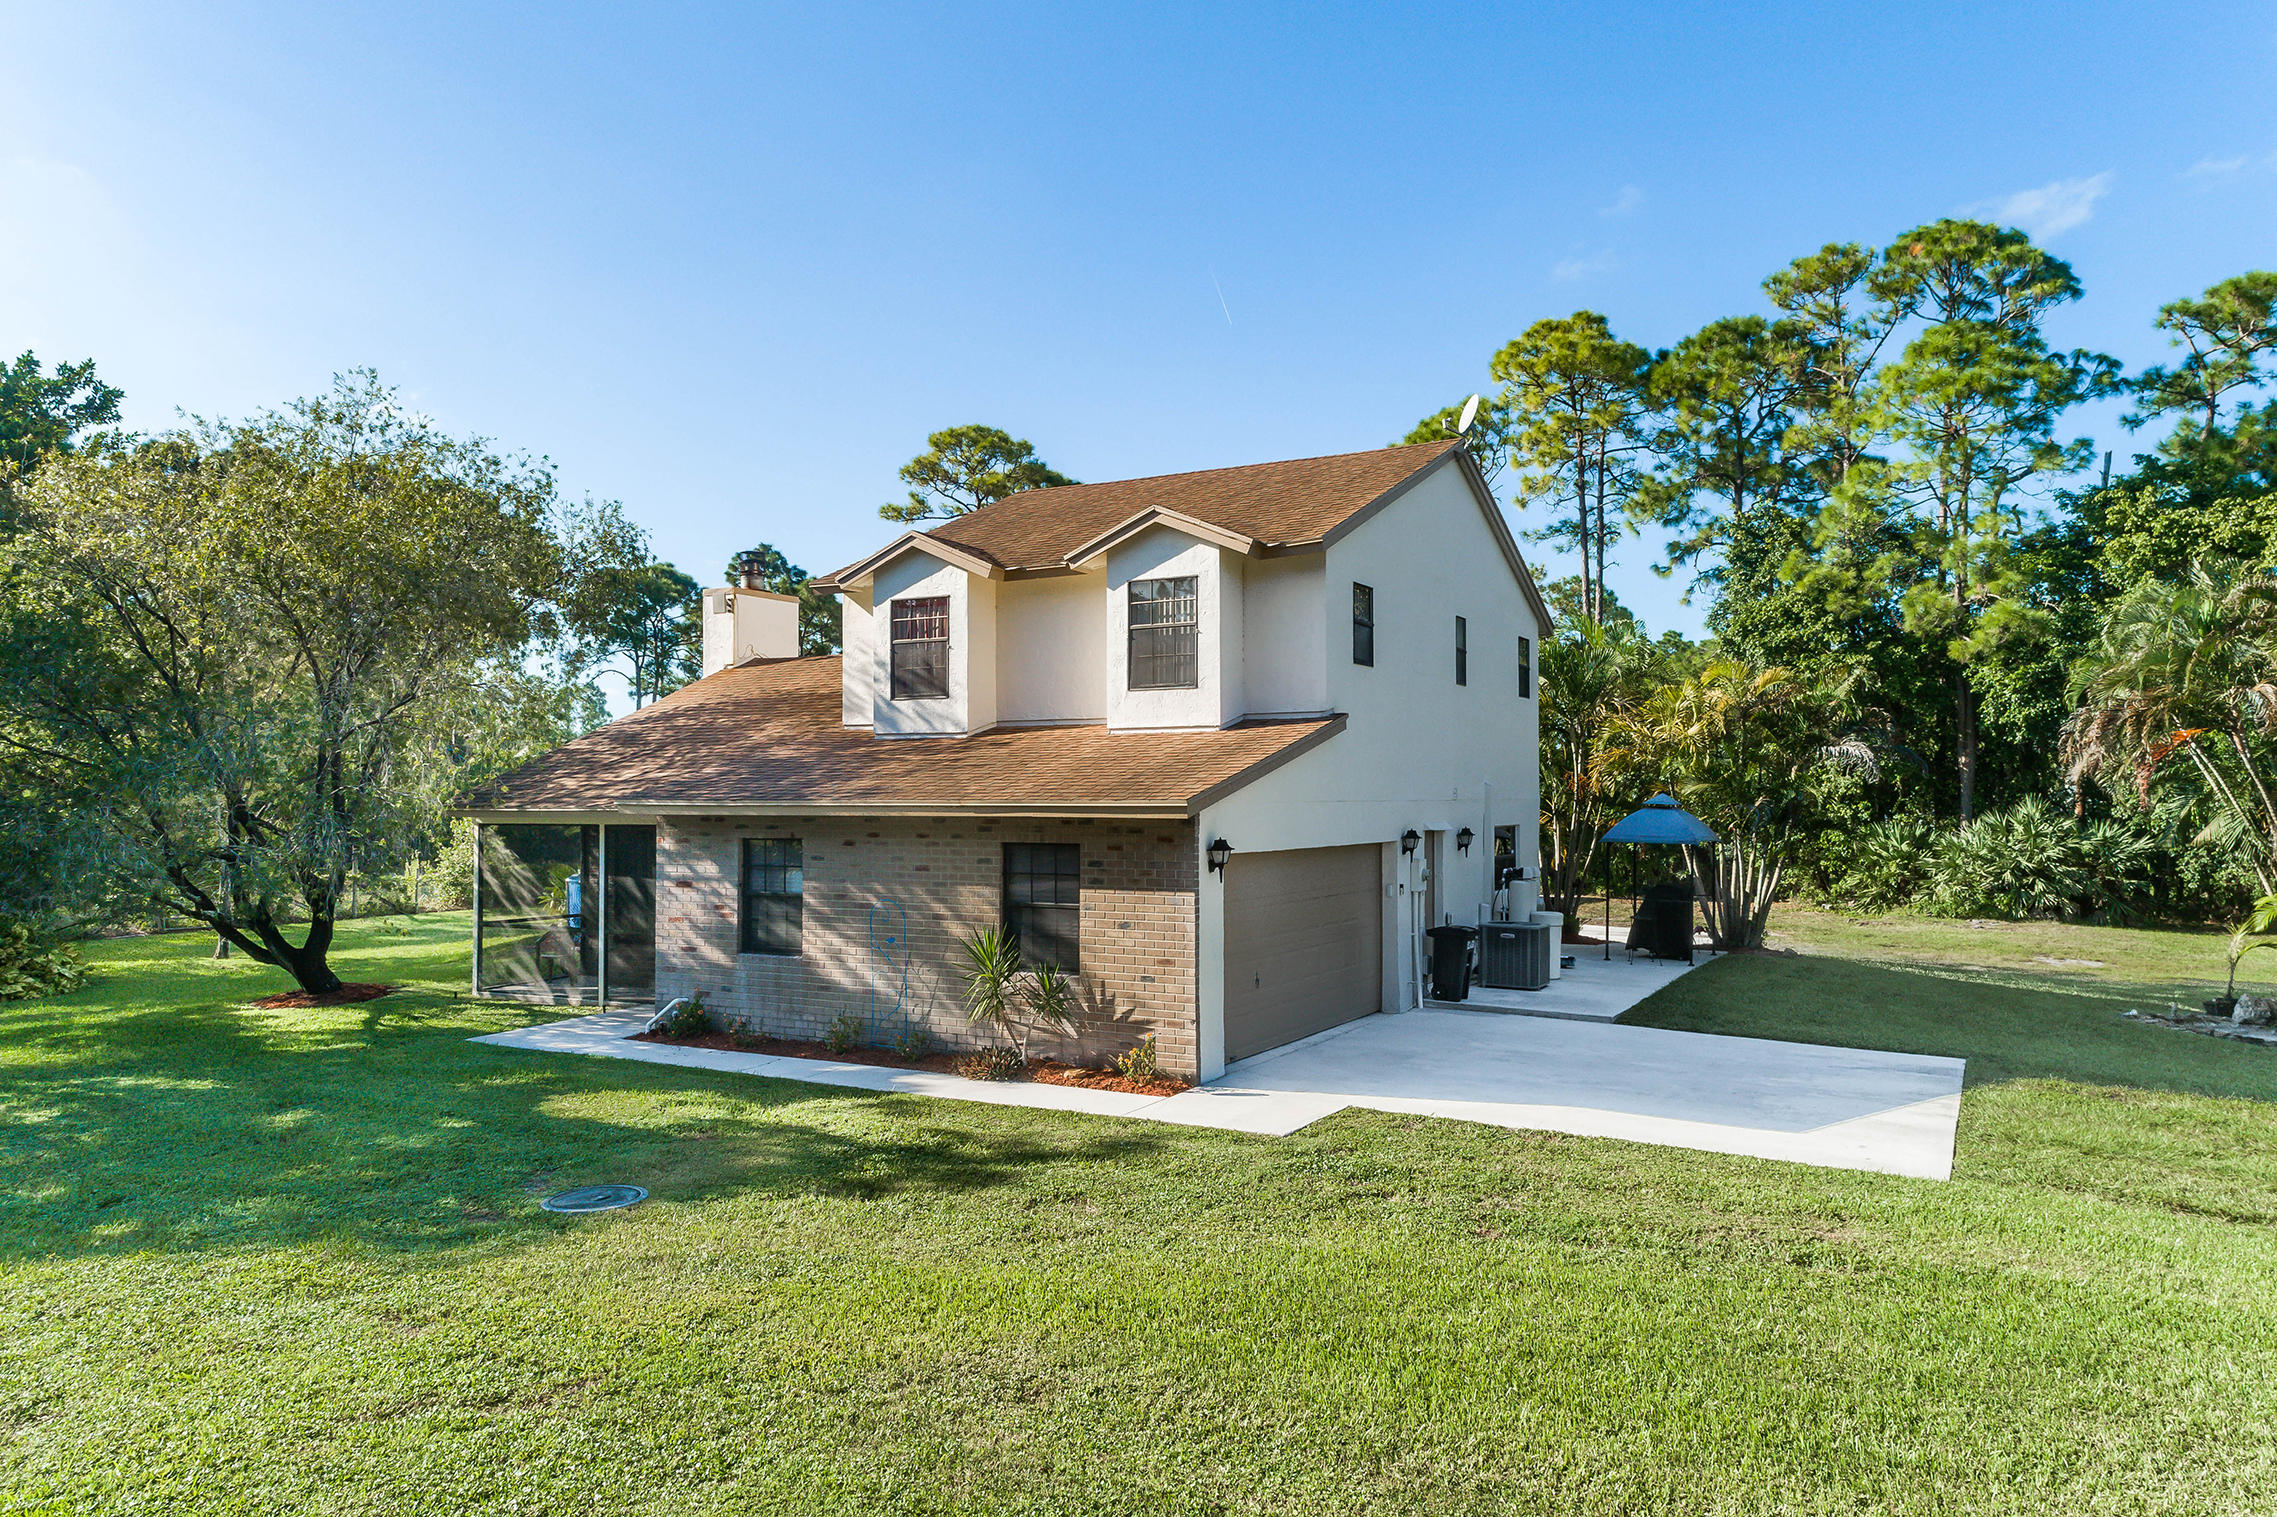 16727 Orange Boulevard 33470 - One of Loxahatchee Homes for Sale